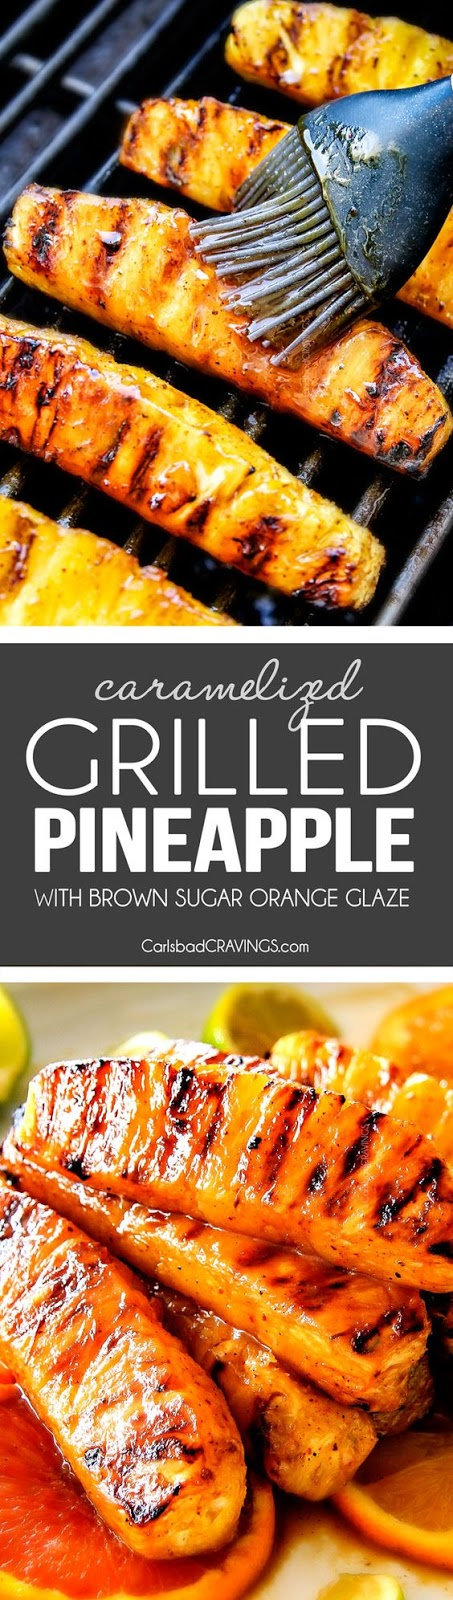 Caramelized Grilled Pineapple with Brown Sugar Chili Glaze